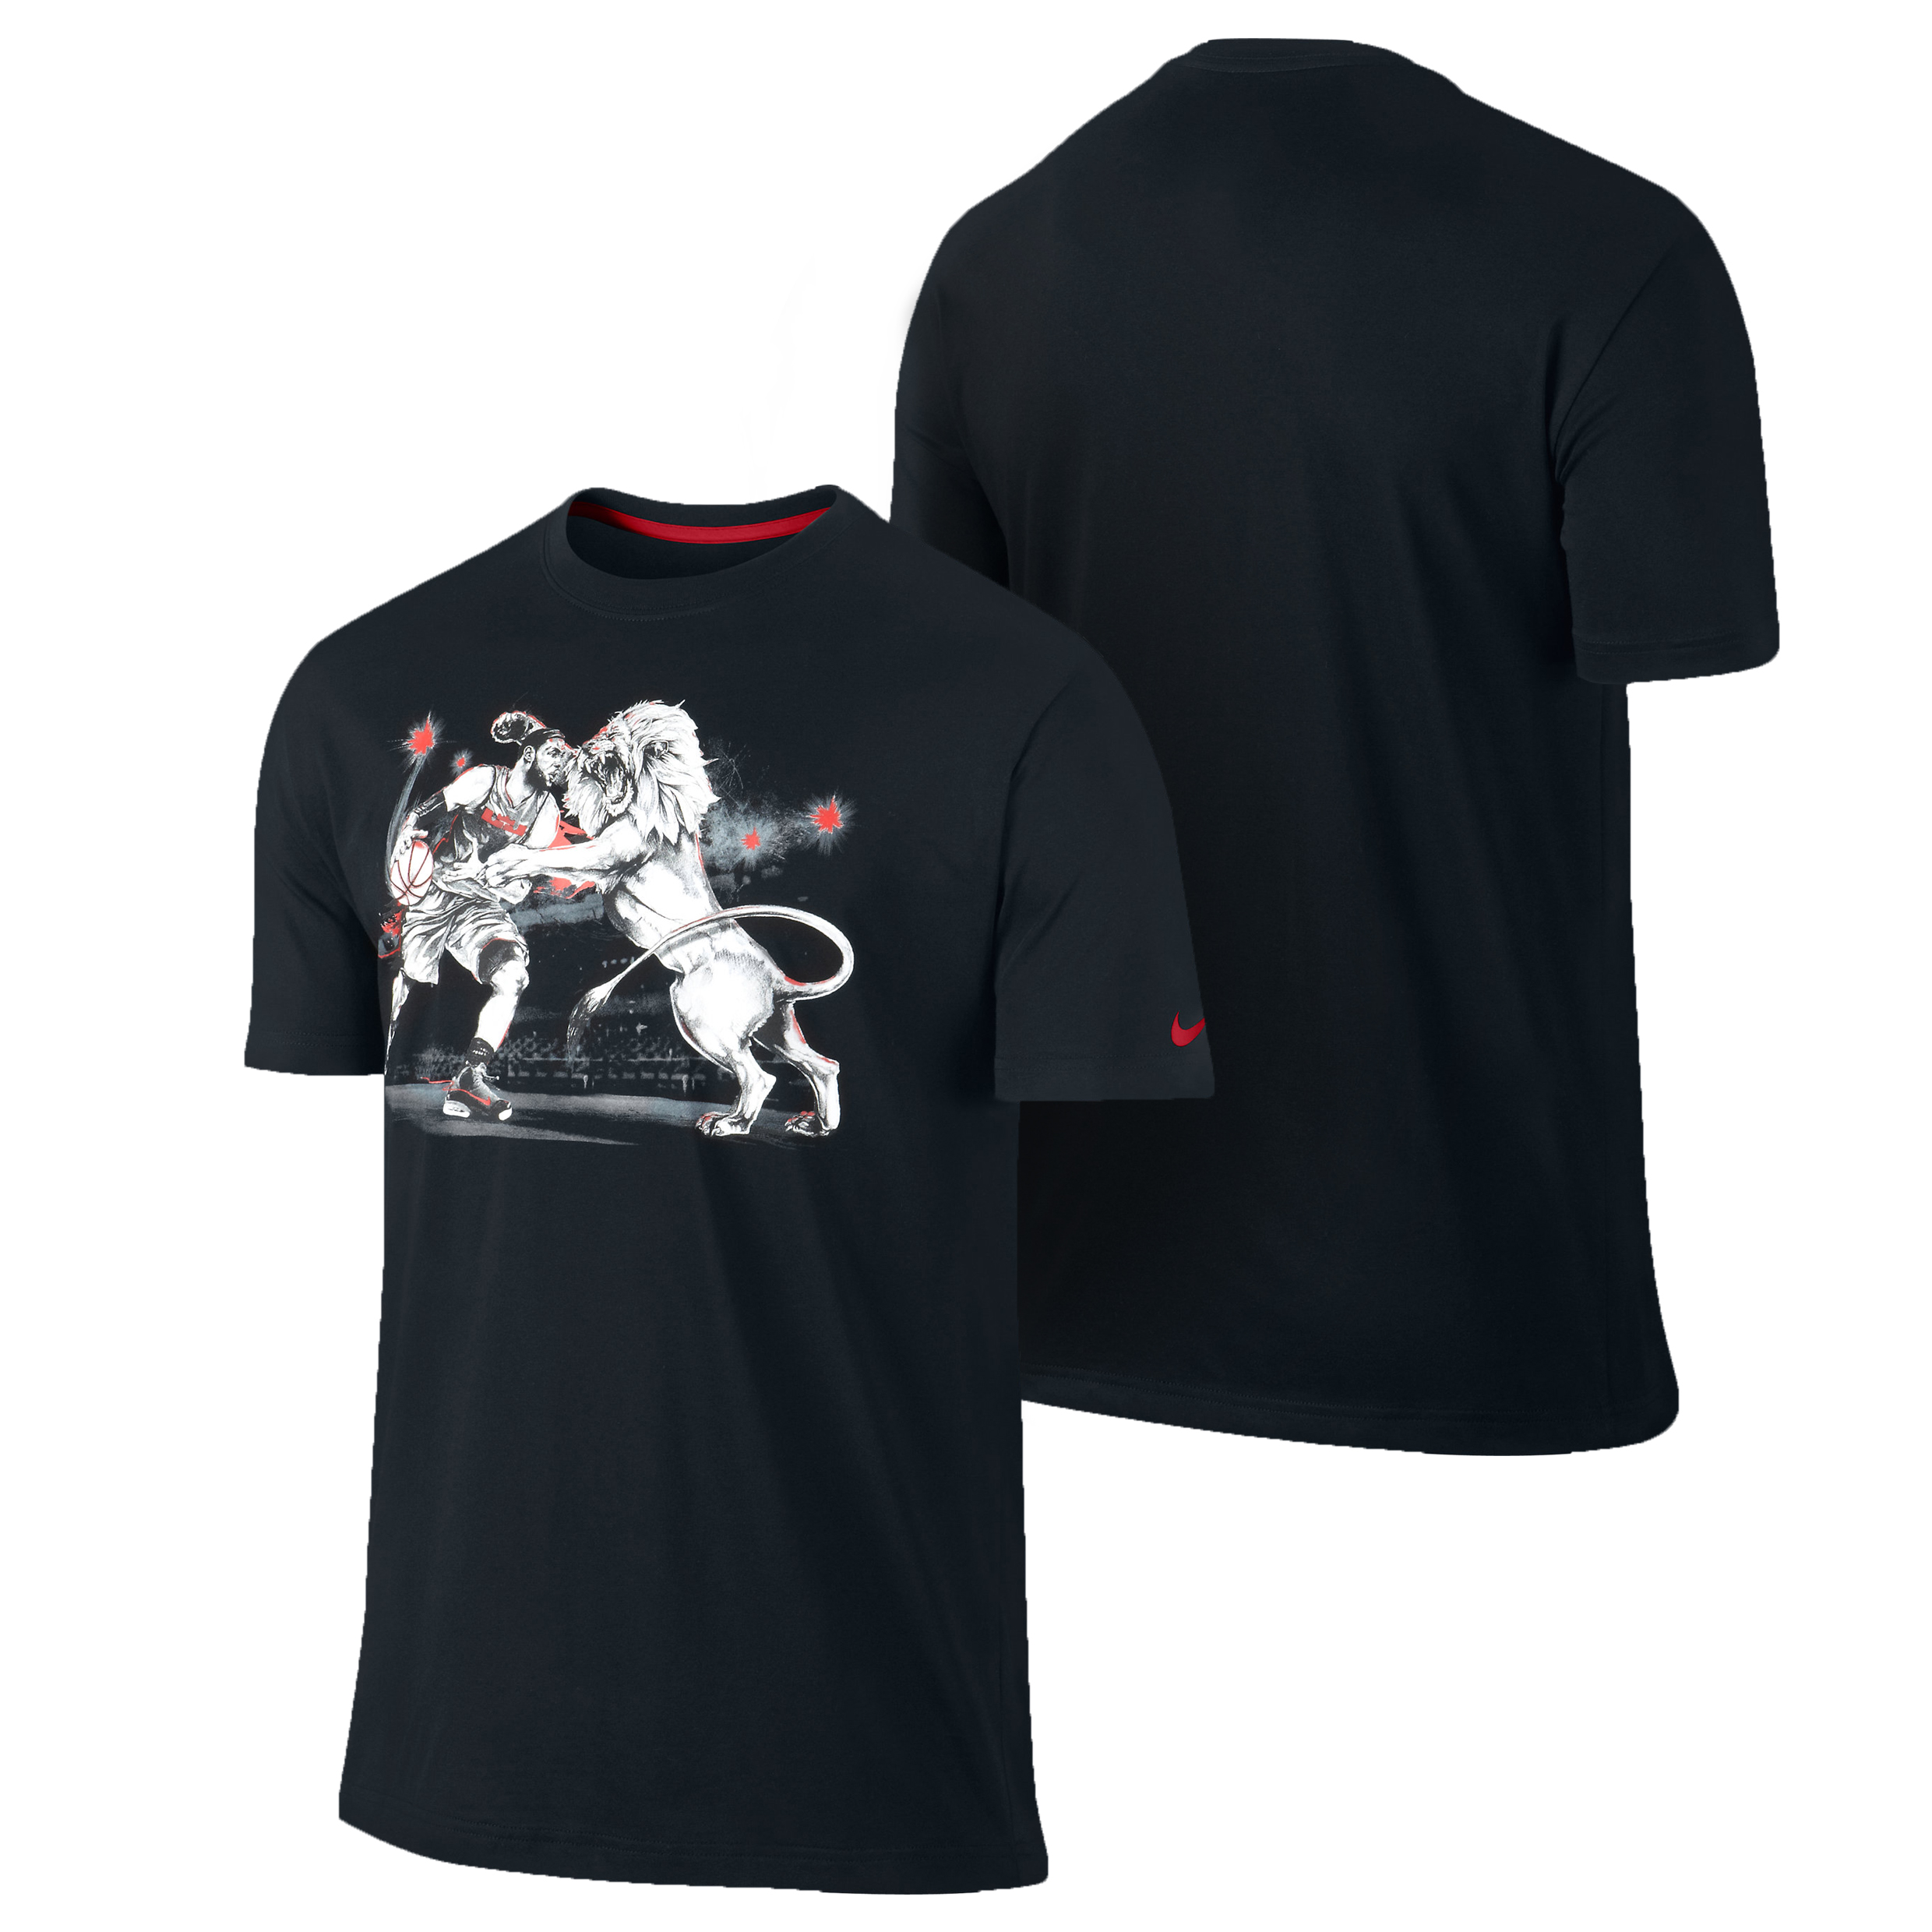 Nike Lebron Lion Within T-Shirt Black